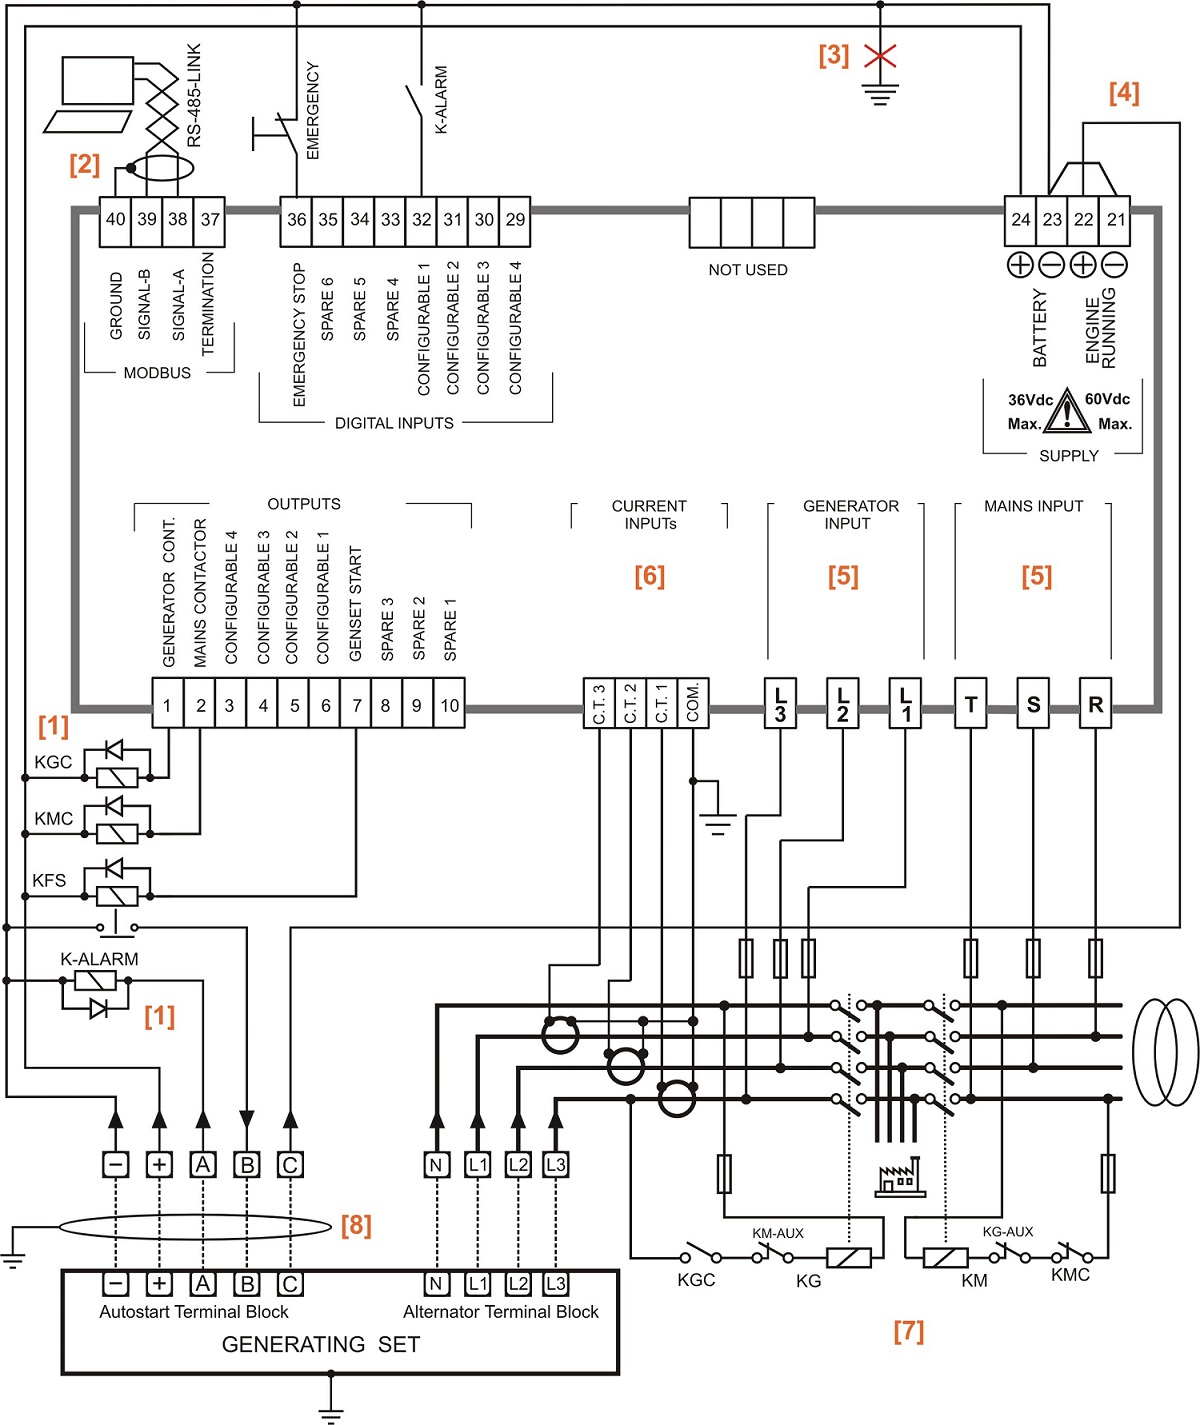 Generac Automatic Transfer Switch Wiring Diagram Nilzanet – Rts Wiring Diagram